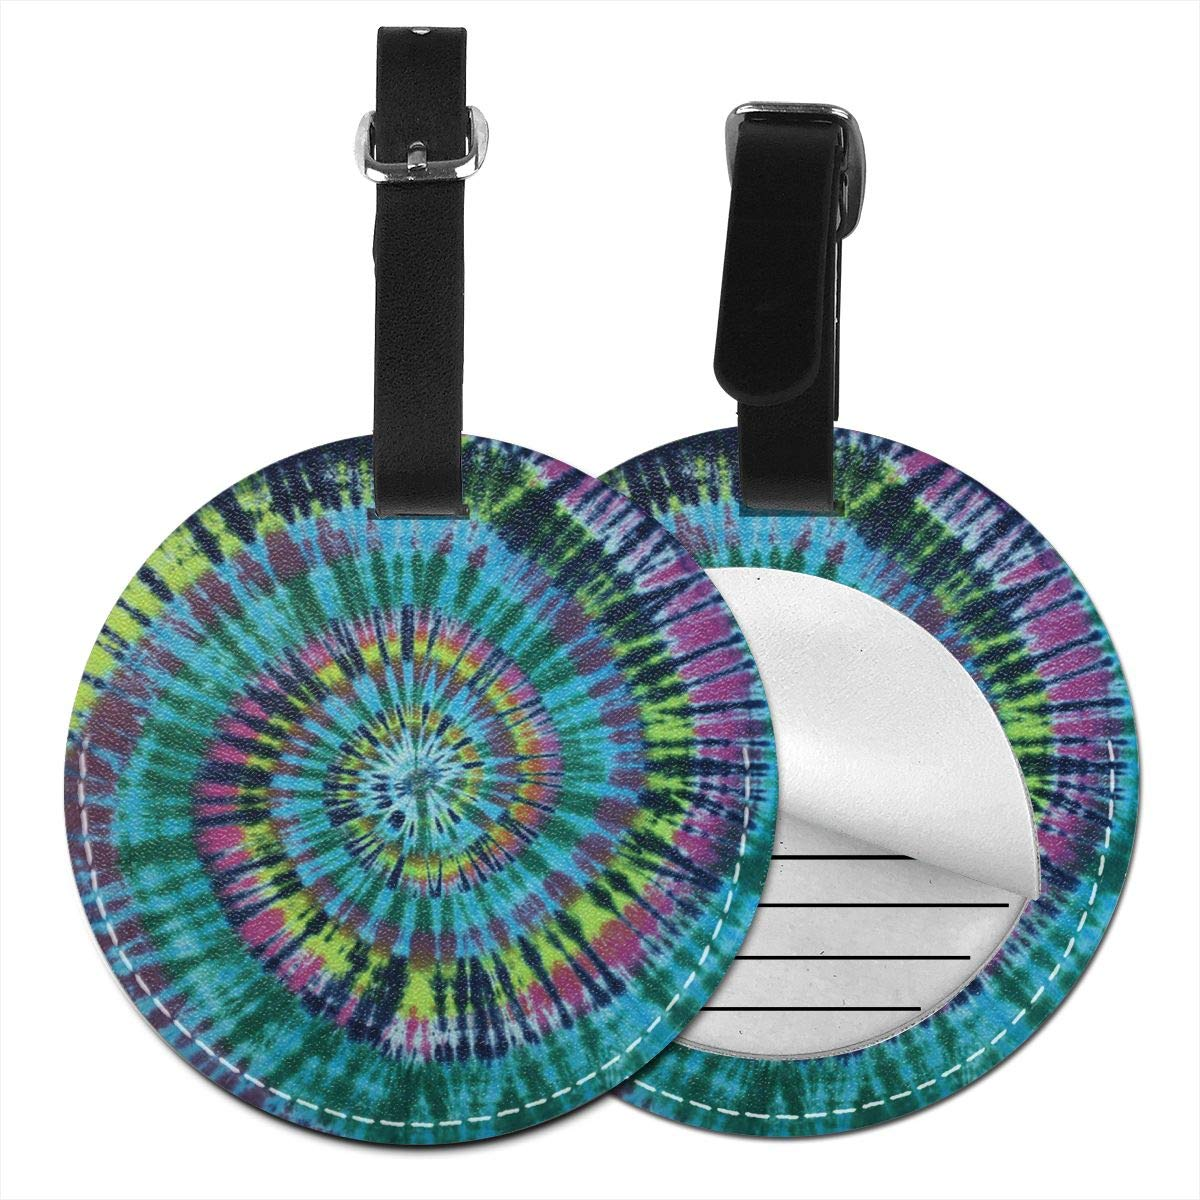 Free-2 Magic River Handcrafted Tie Dye Luggage Tag 3D Print Leather Travel Bag ID Card